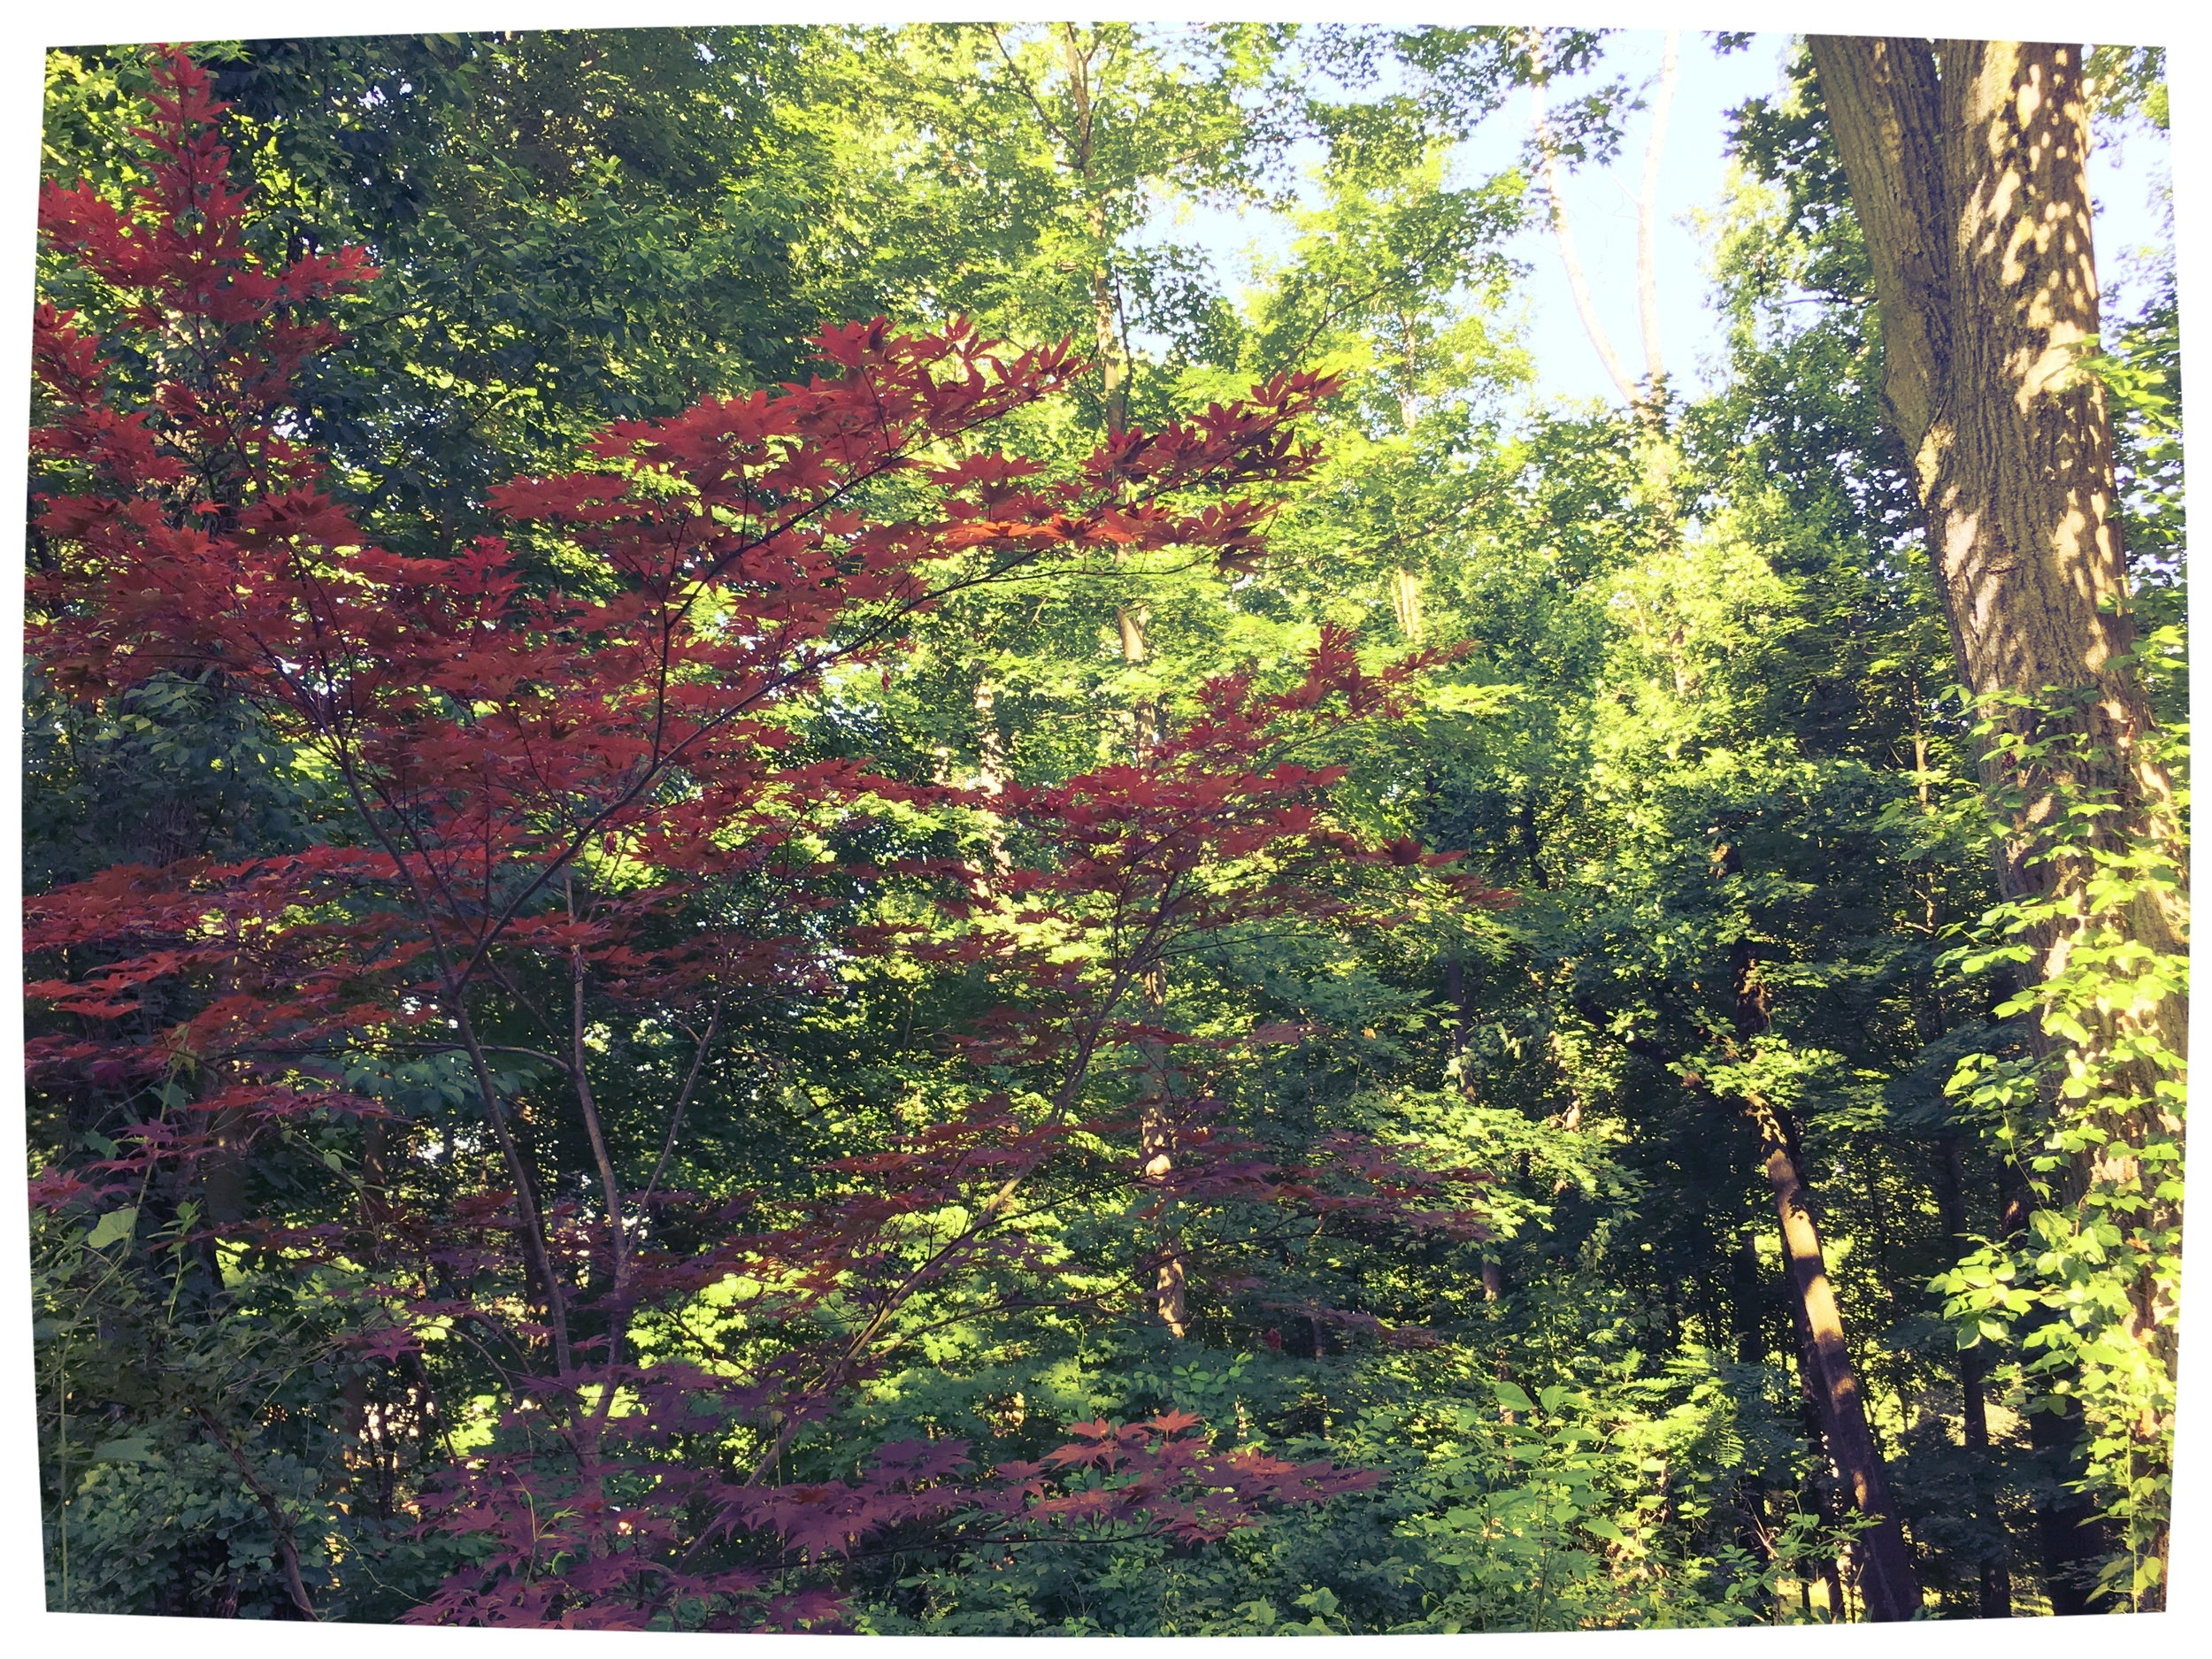 The single Japanese Maple we've been nurturing back. To save or not to save?